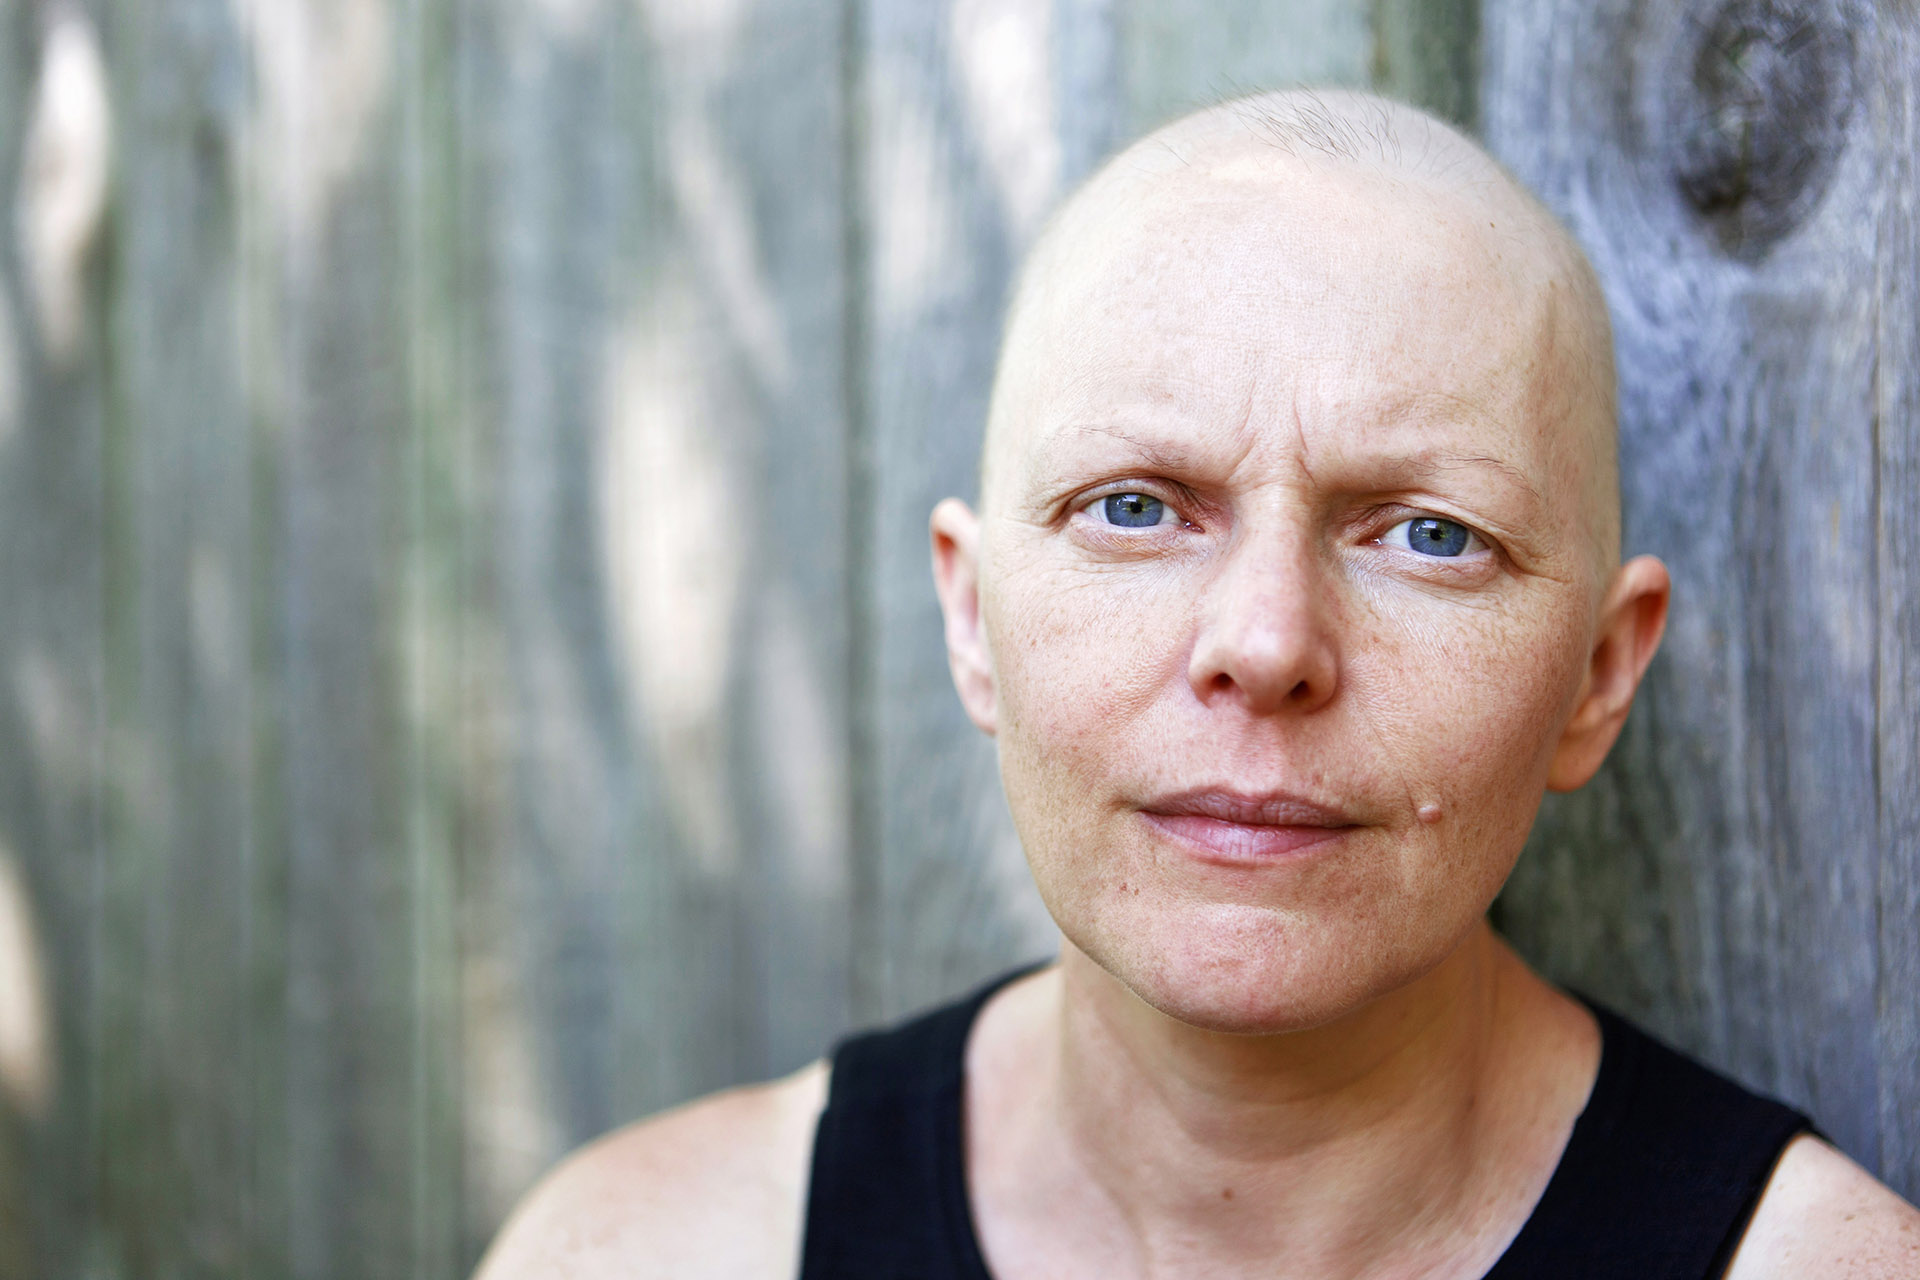 A woman being treated for breast cancer using chemotherapy poses for a portrait.